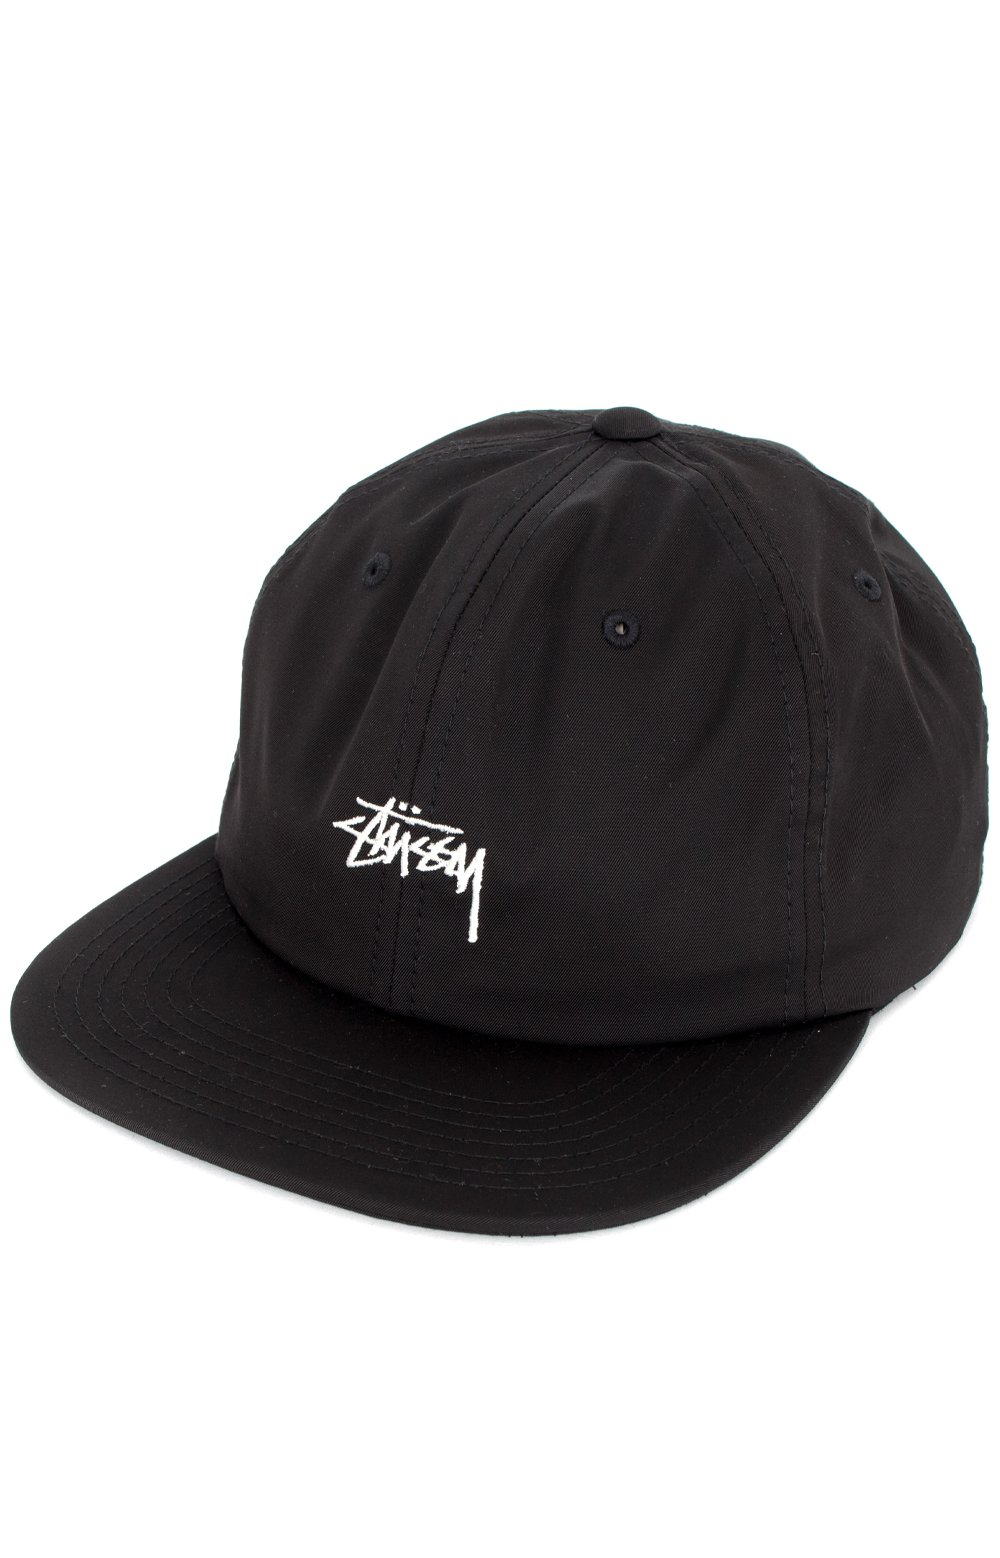 Stock Poly Cotton Snap-Back Hat - Black